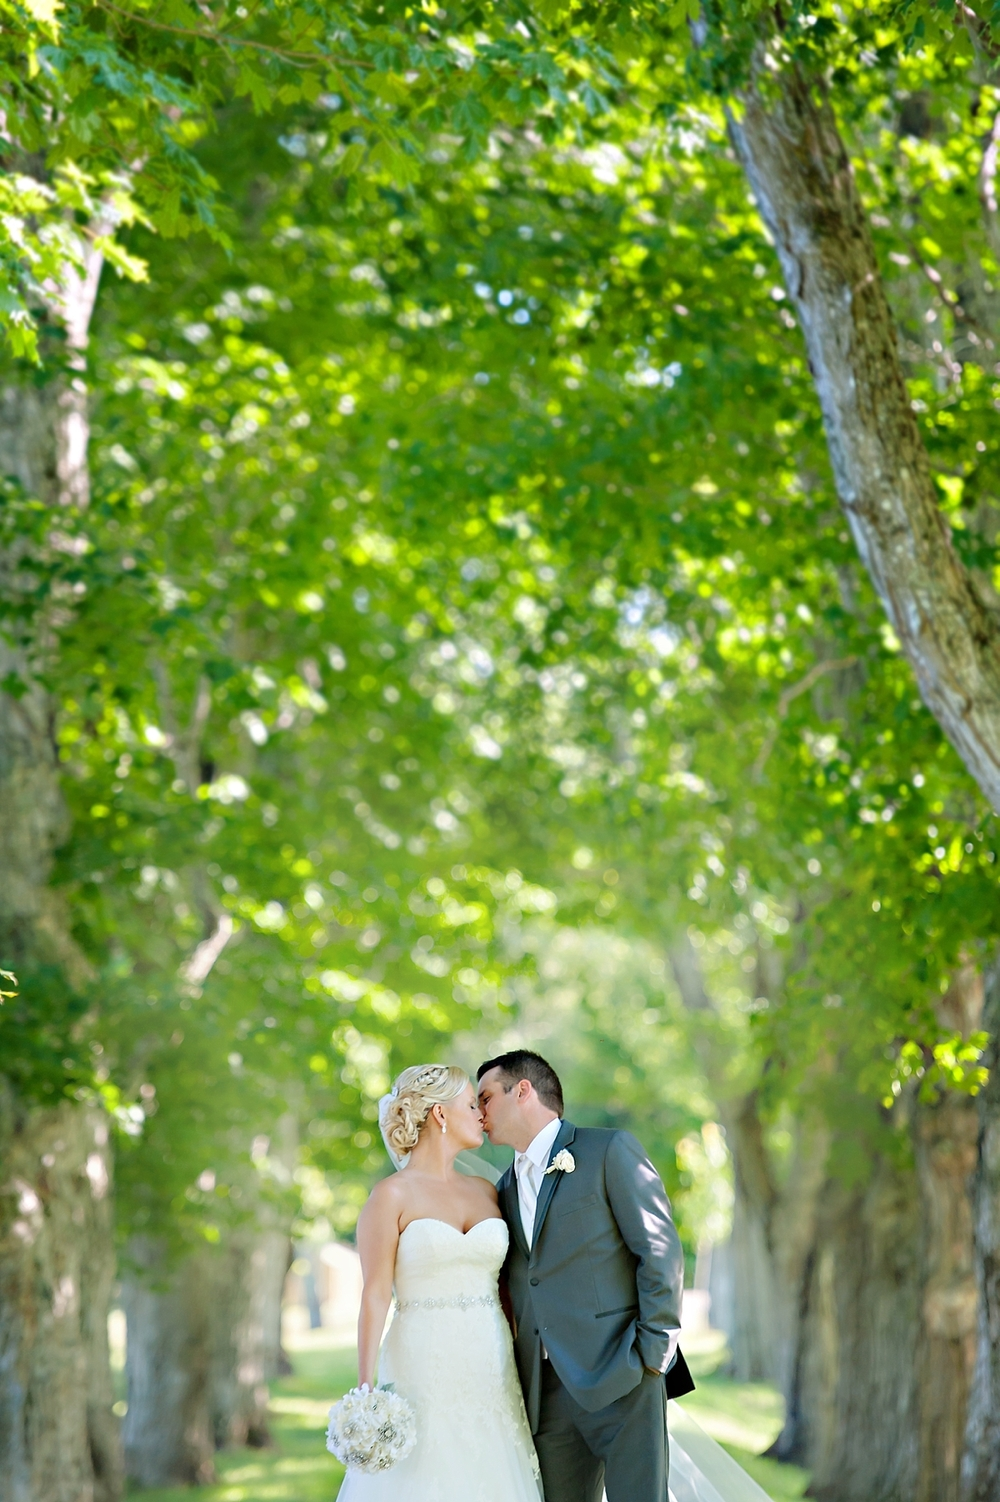 Natlie-+-Michael-_-Pictou-Wedding-Candace-Berry-Photography070.jpg